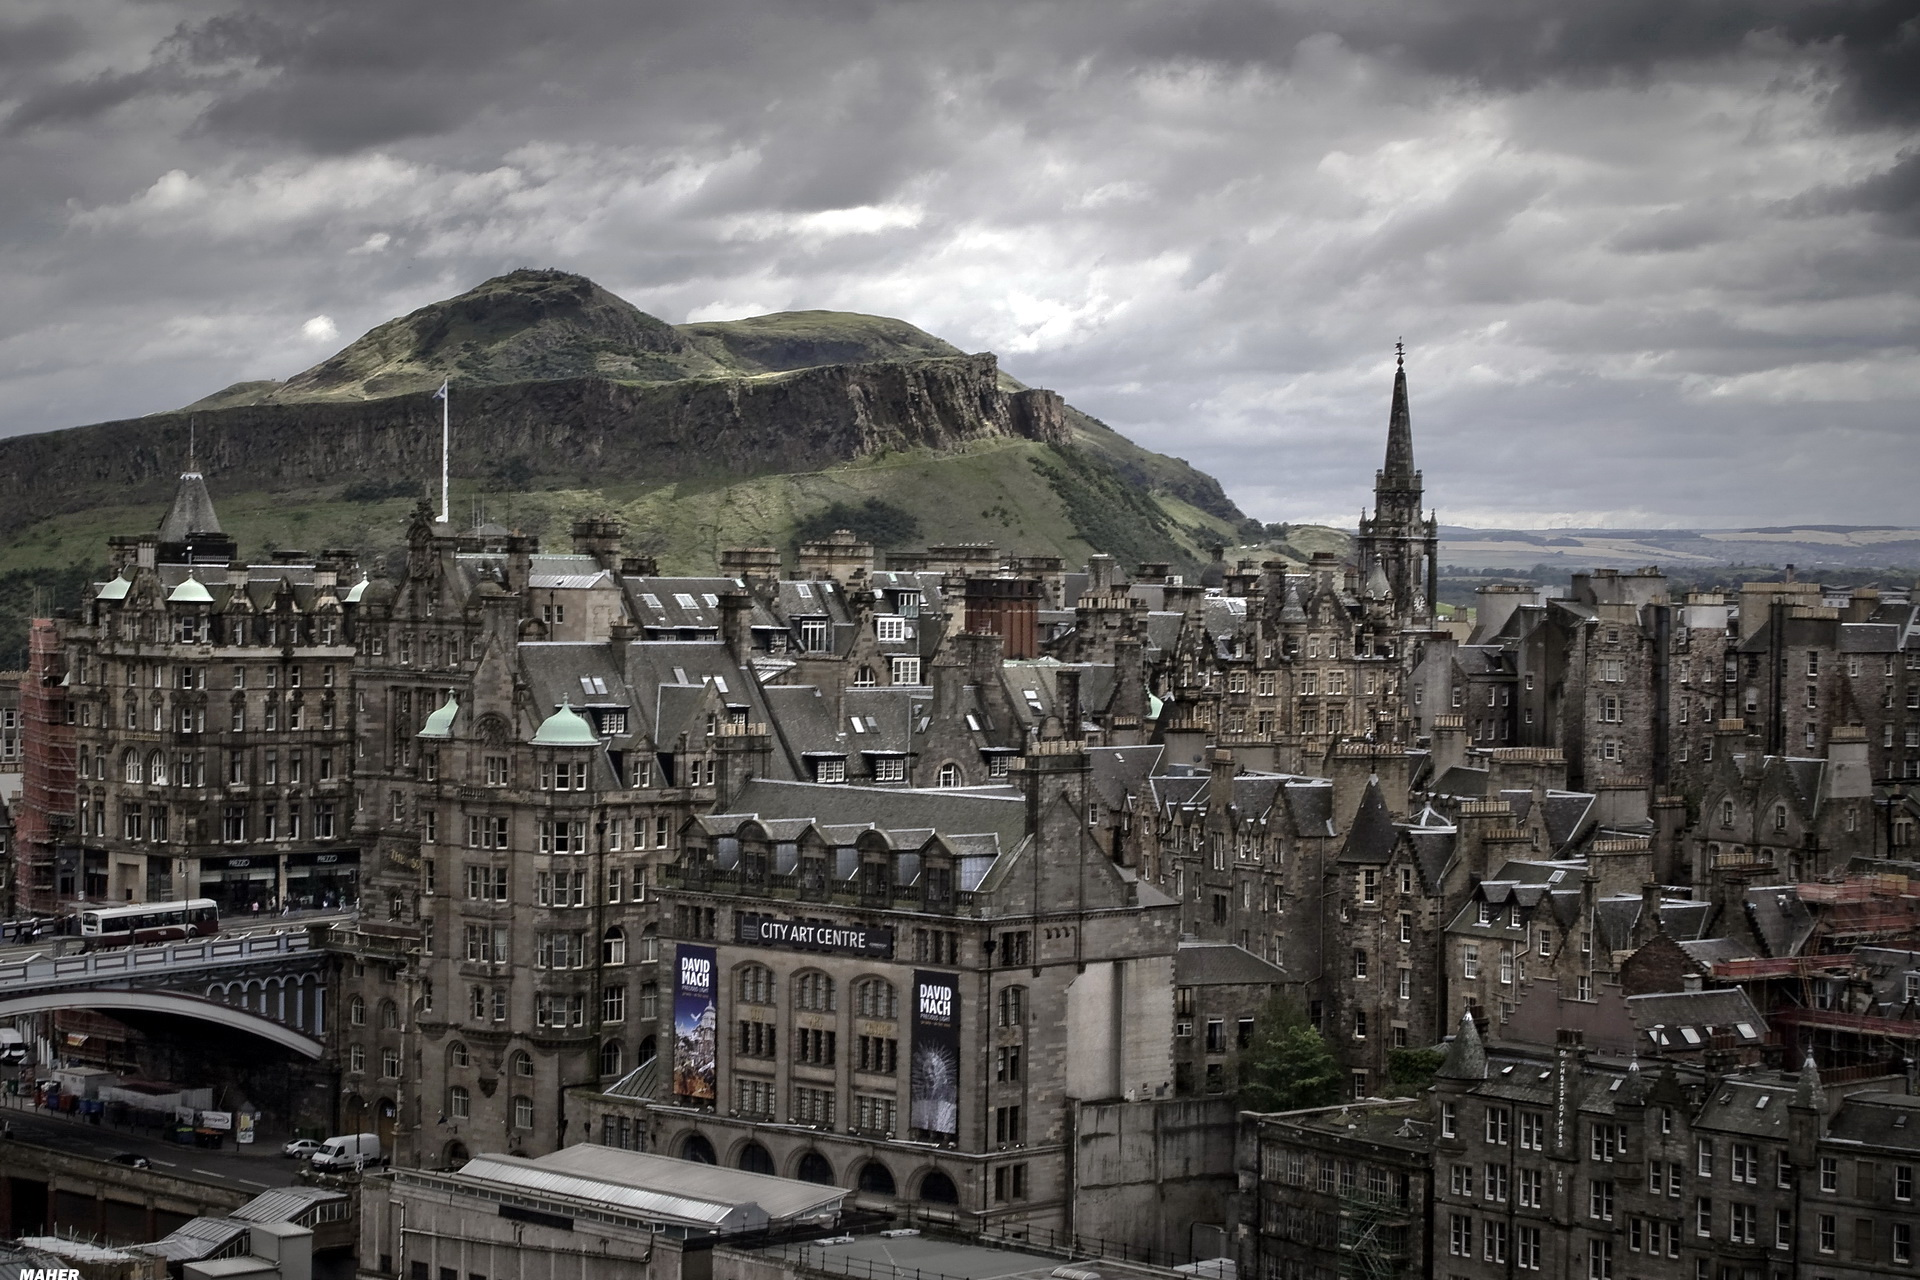 edinburgh scotland wallpaper - photo #13